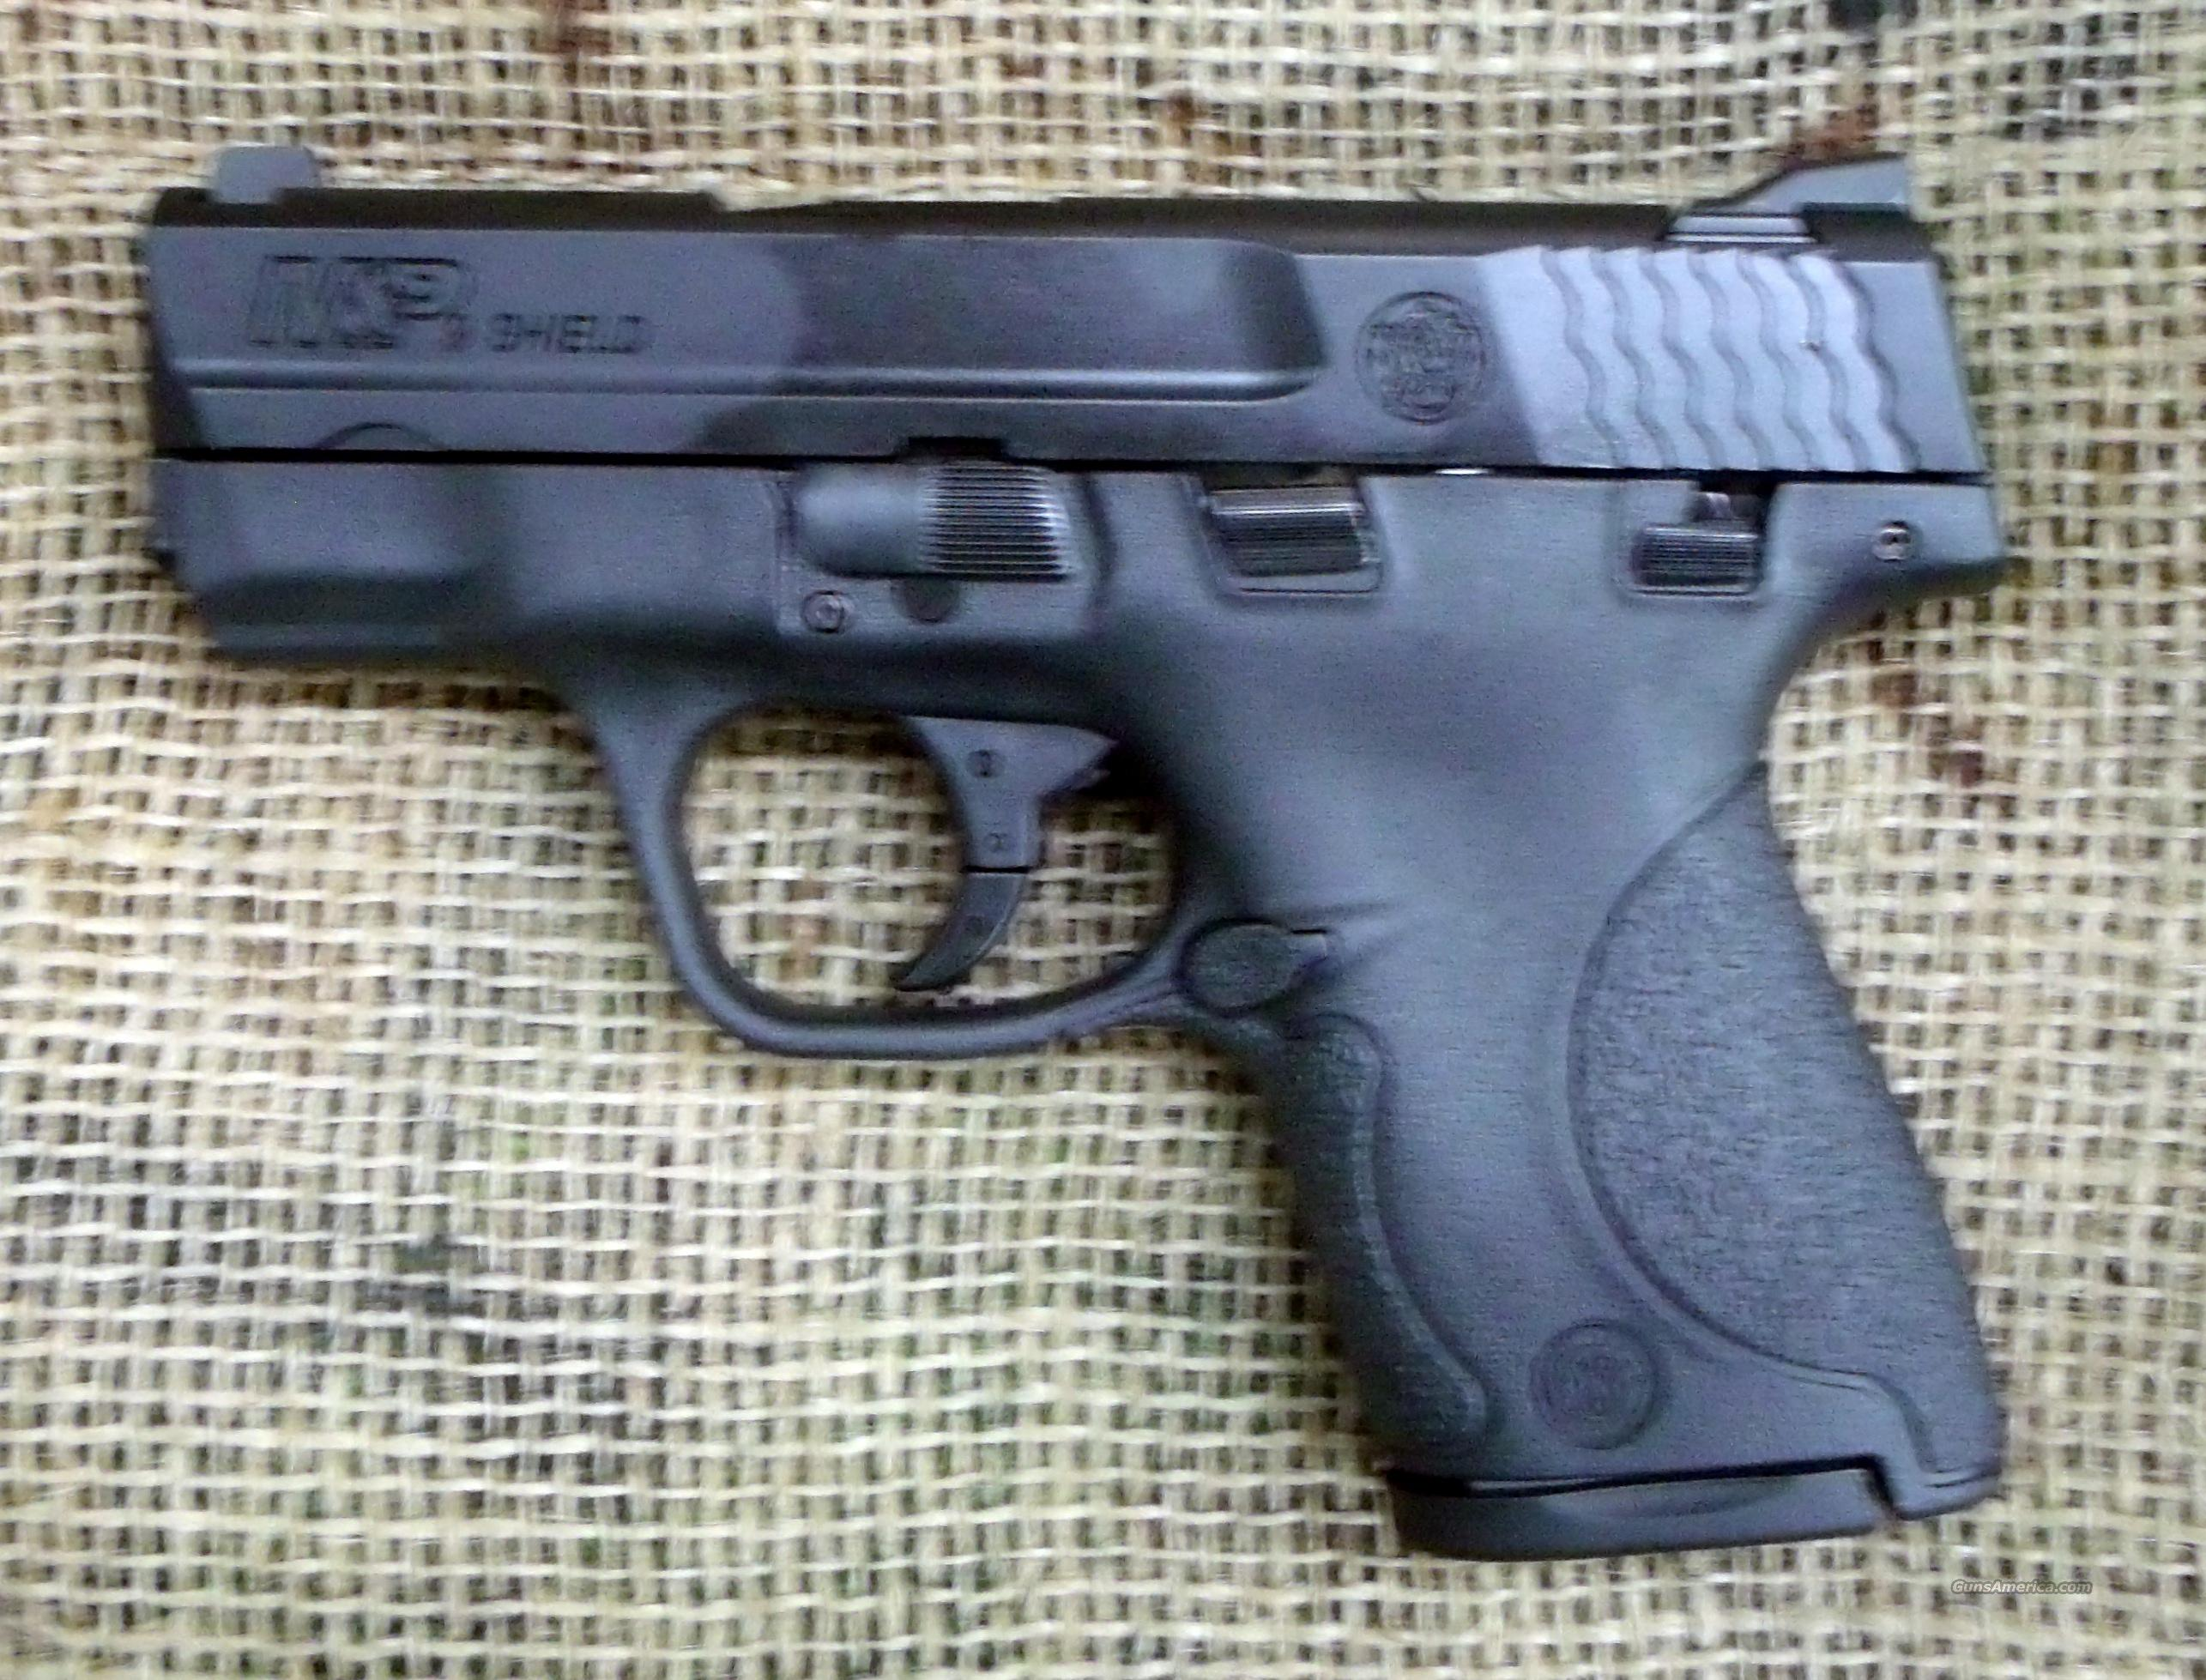 SMITH & WESSON M&P 9 Shield Pistol, 9mm Cal.  Guns > Pistols > Smith & Wesson Pistols - Autos > Polymer Frame